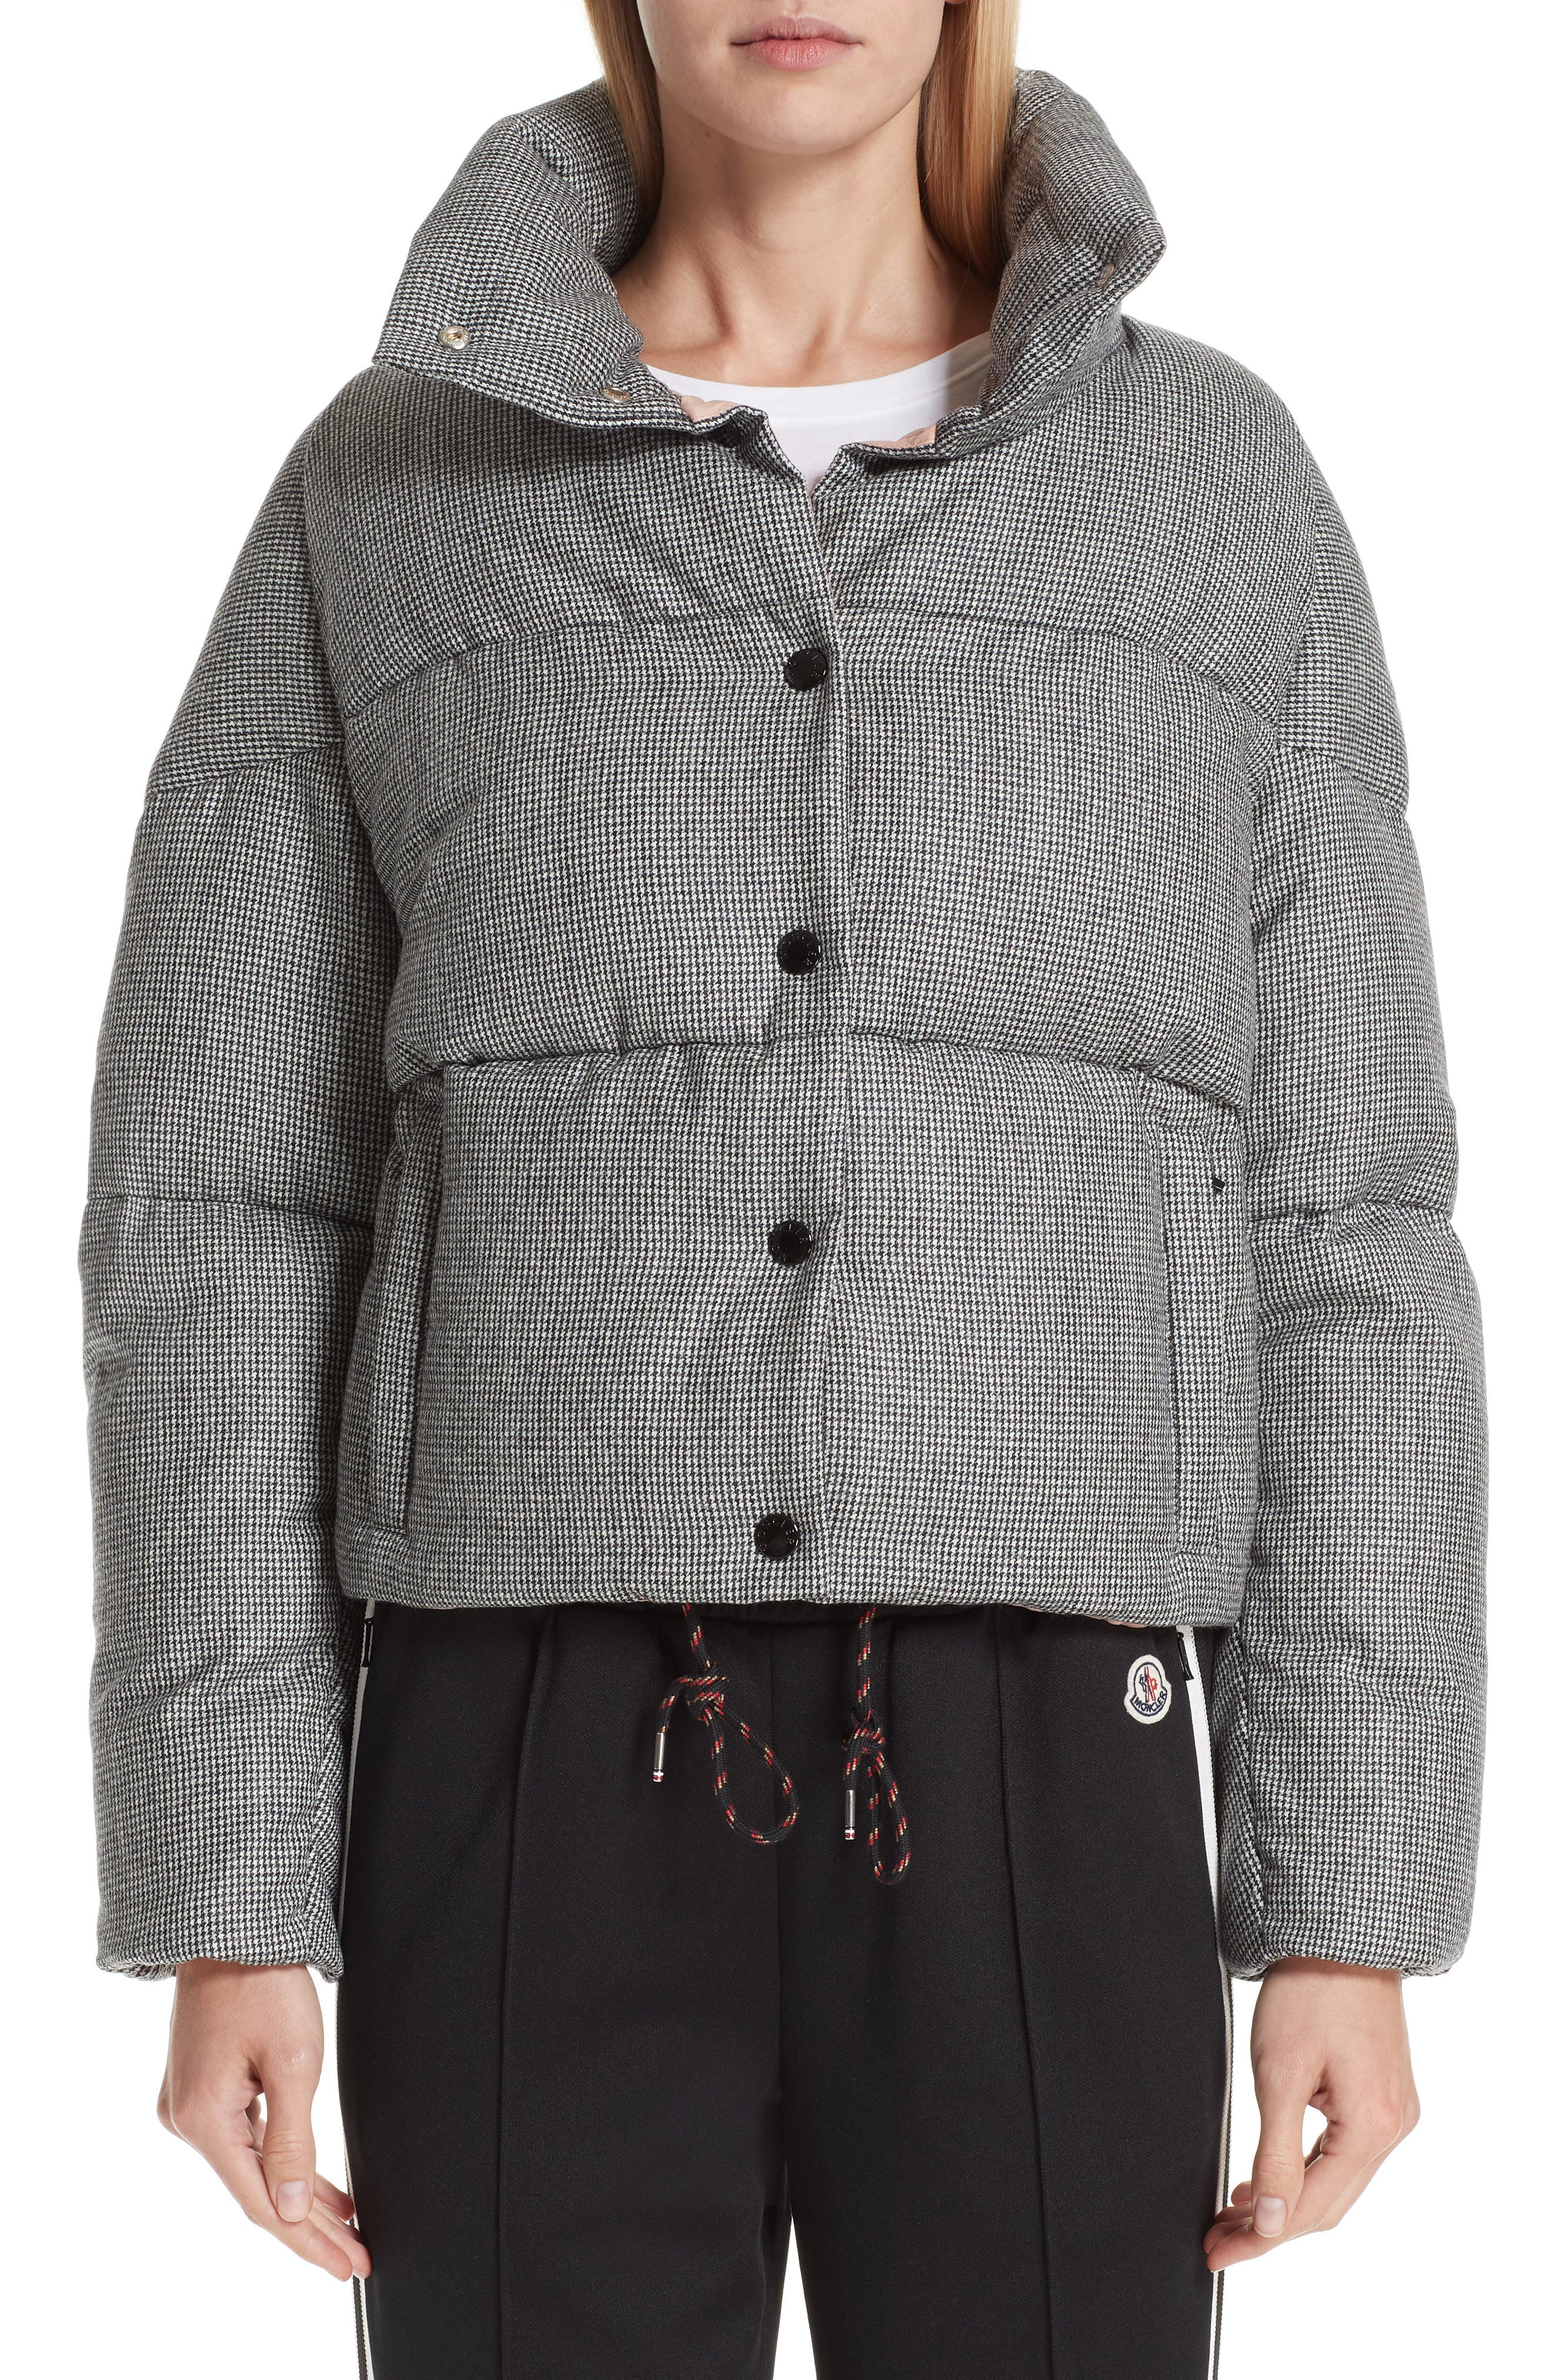 MONCLER, Cer Wool Down Puffer Jacket, Main thumbnail 1, color, 001